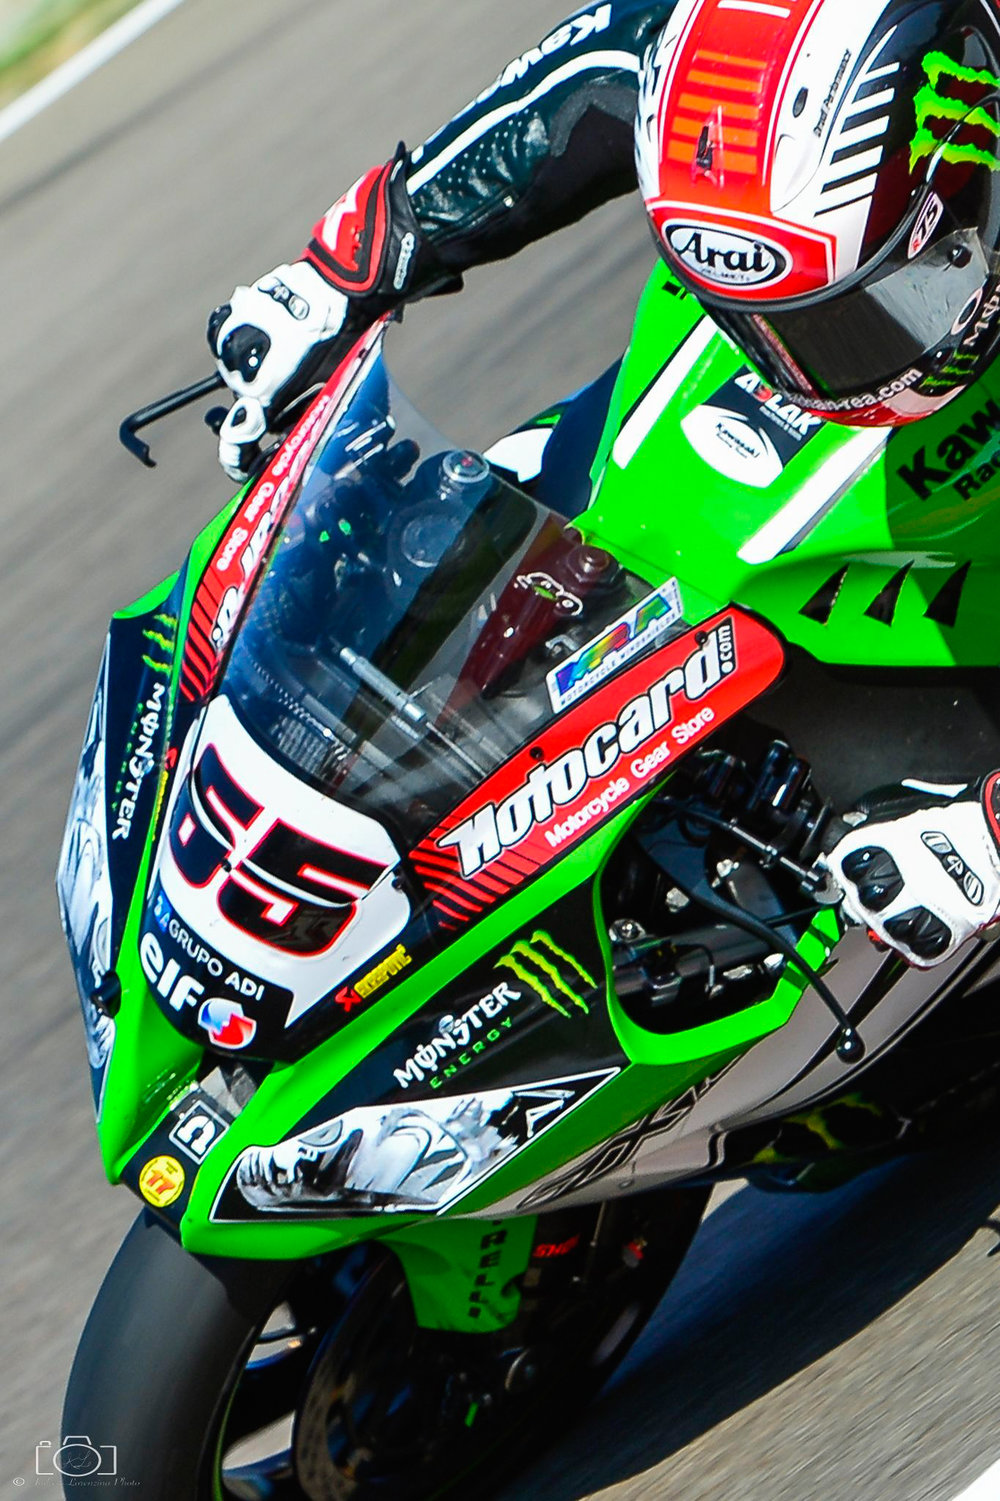 21-superbike-sbk-moto-bike-imola-race.jpg